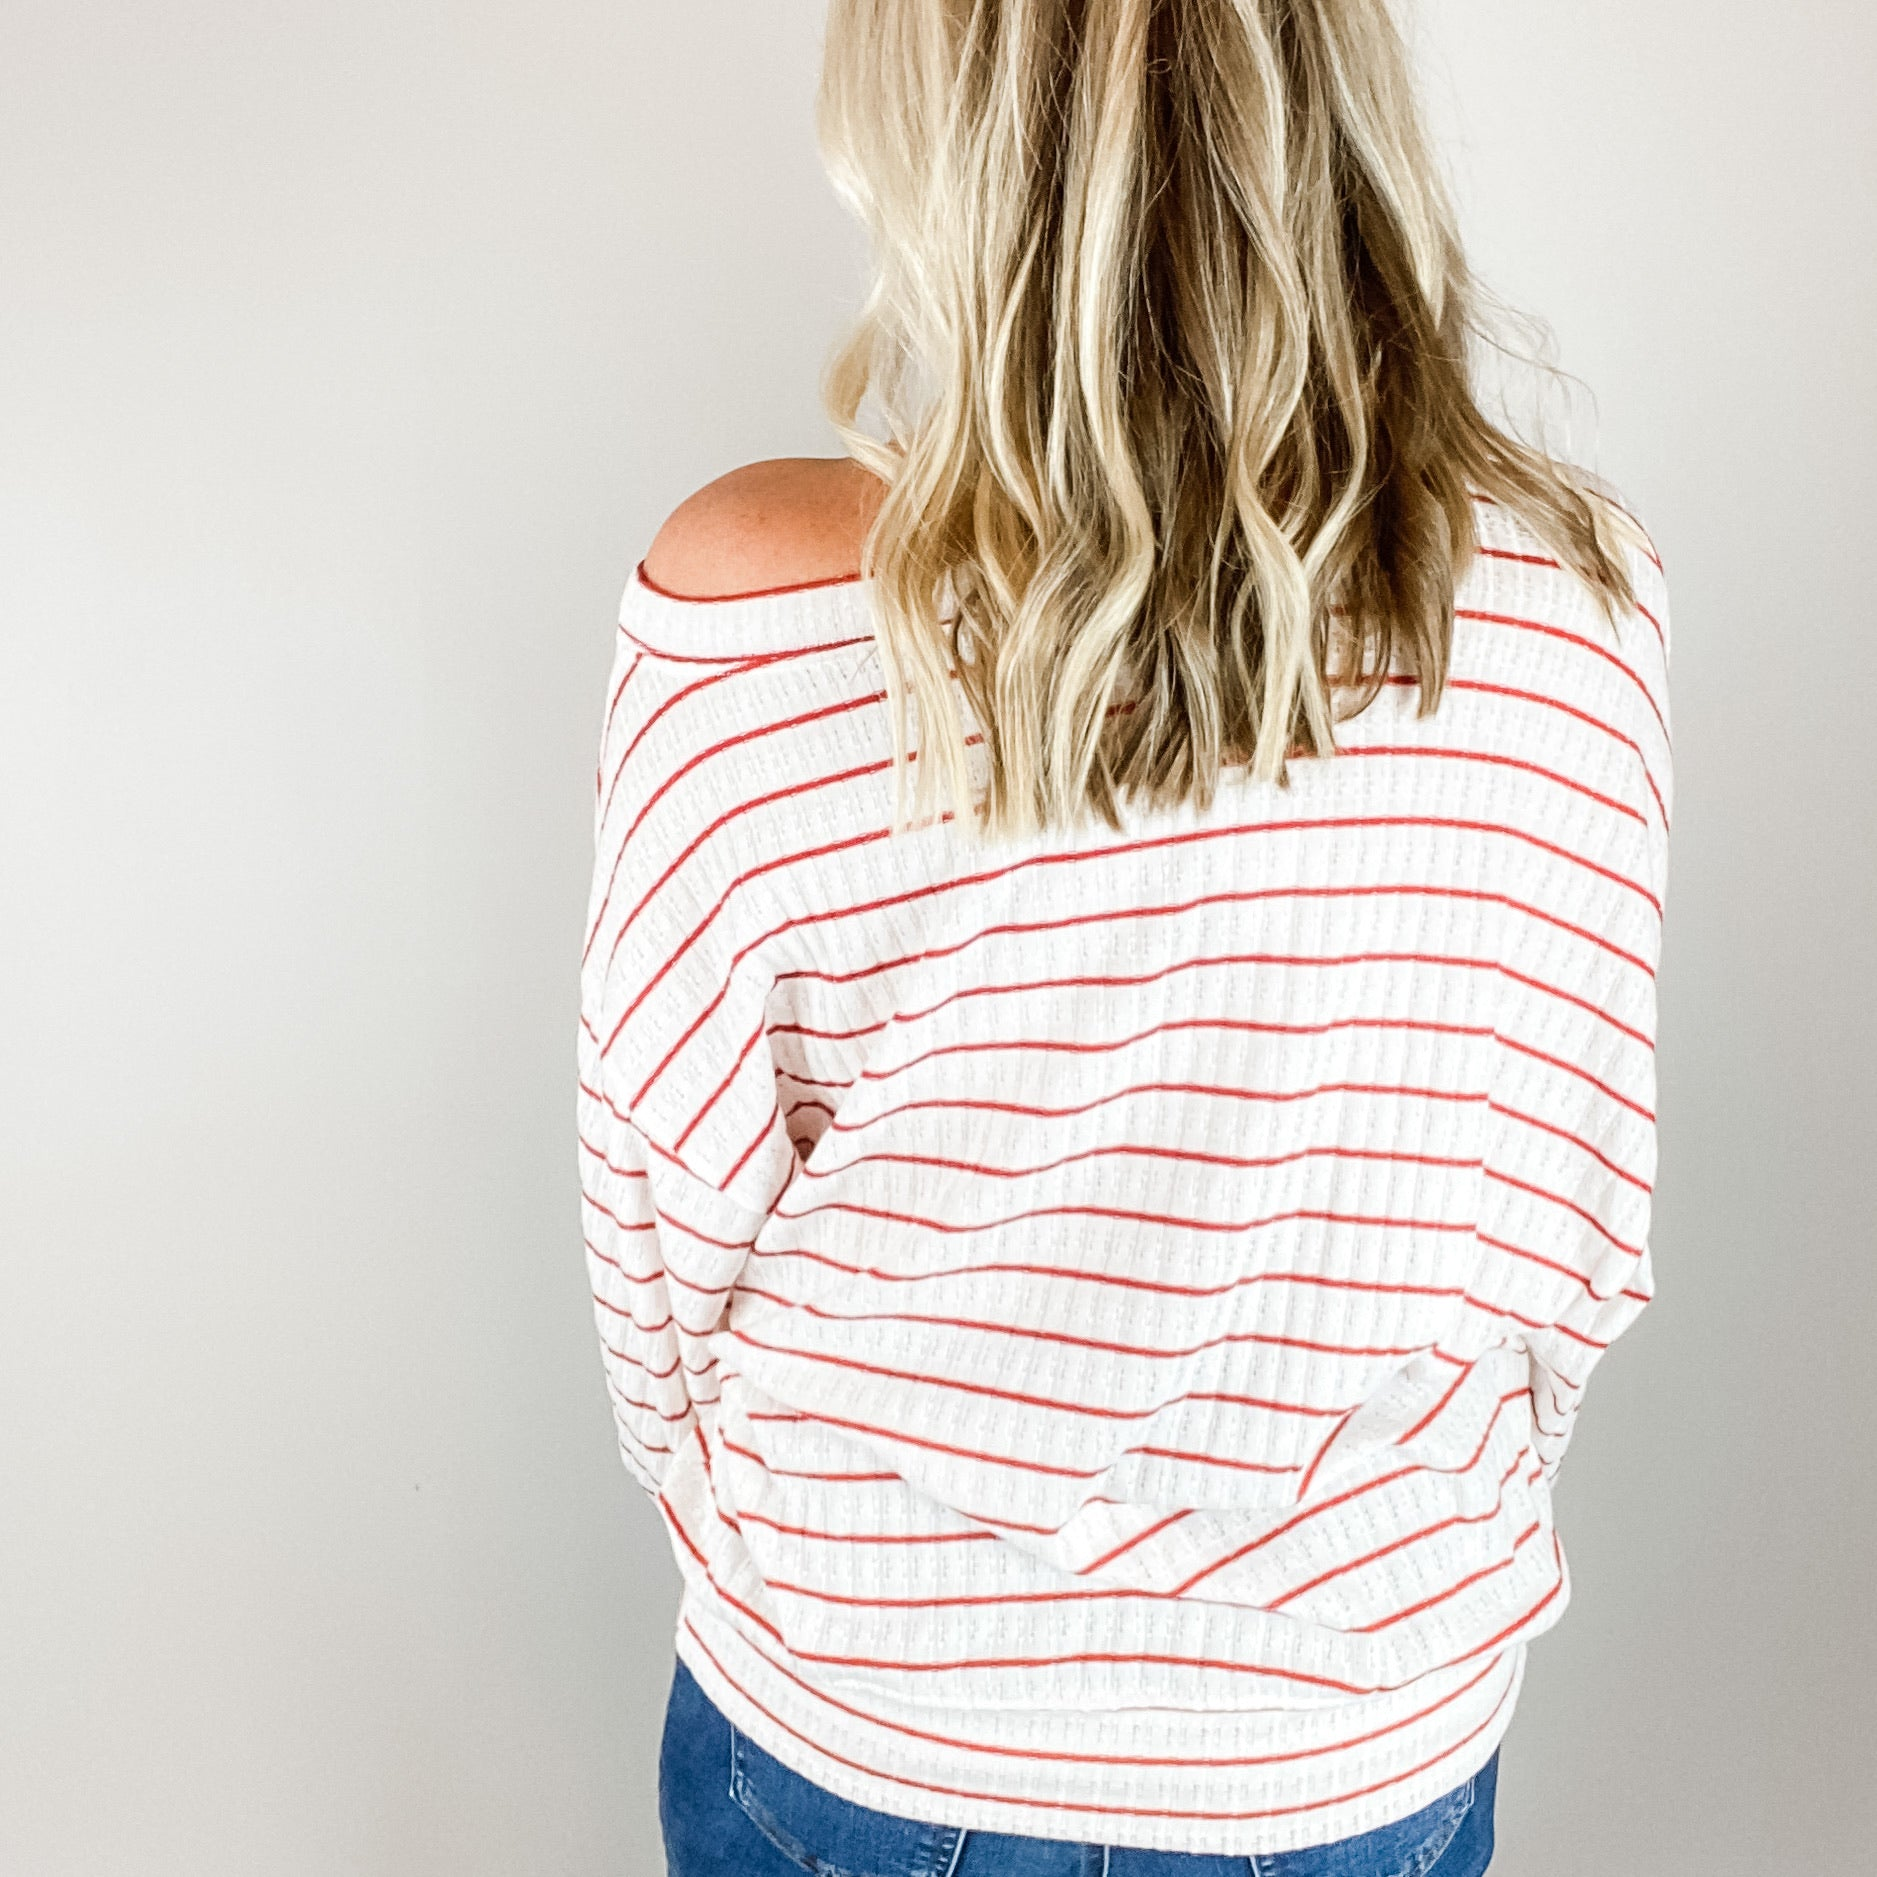 Bentlee Oversized Striped Sweater-Find your perfect casual tops by searching our collection of women's tops online today! Shop trendy tanks, blouses, tees, sweaters and more. New items added daily. Tops for women.-East Coast She, South Carolina